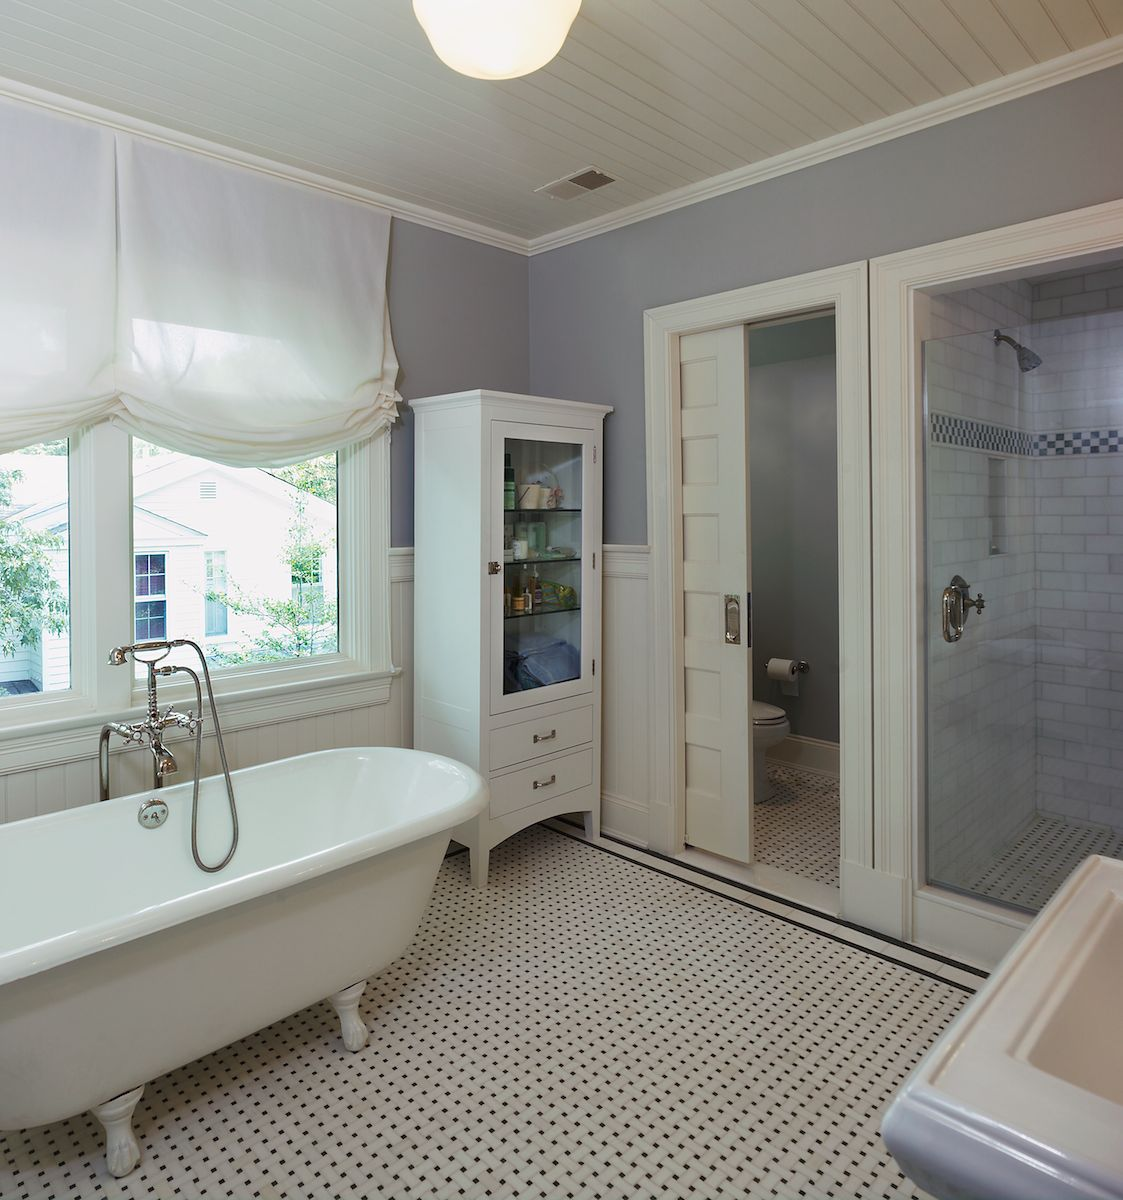 Traditional 4-Square Bathoom